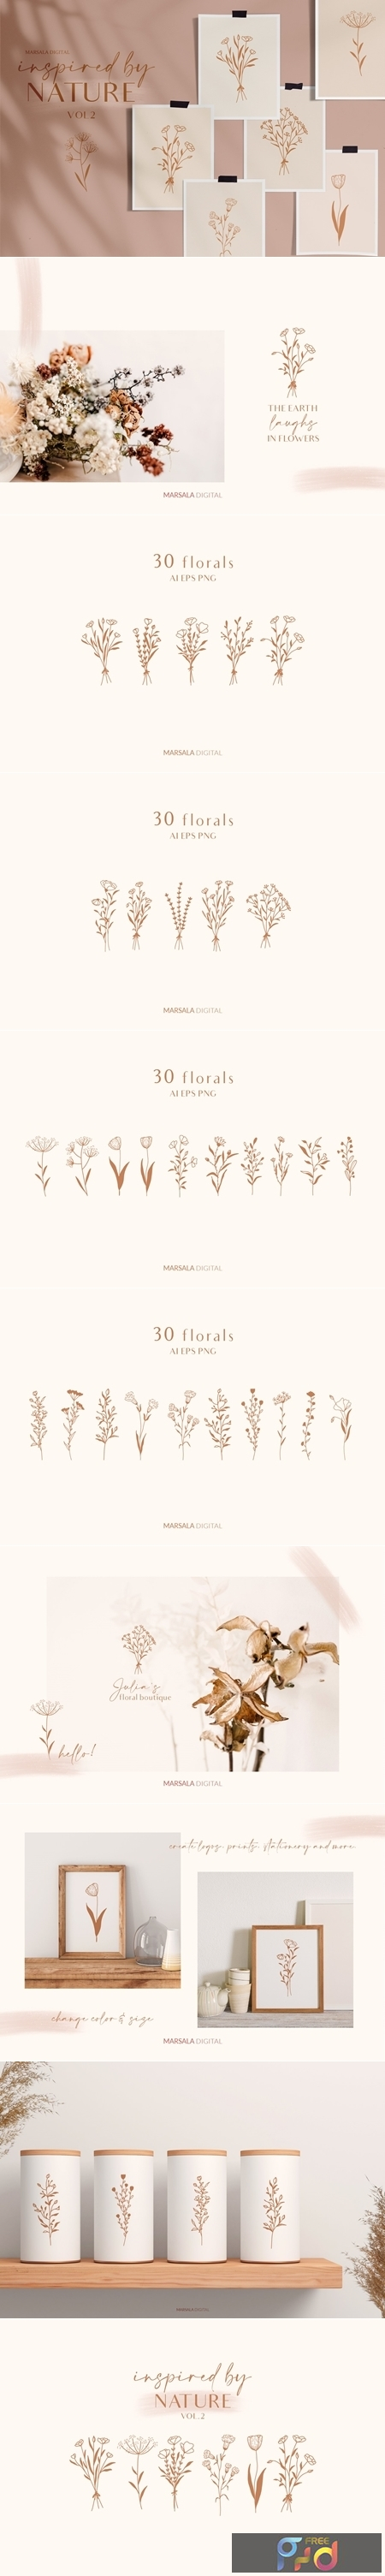 Floral Line Drawings Logo Elements 4458426 1